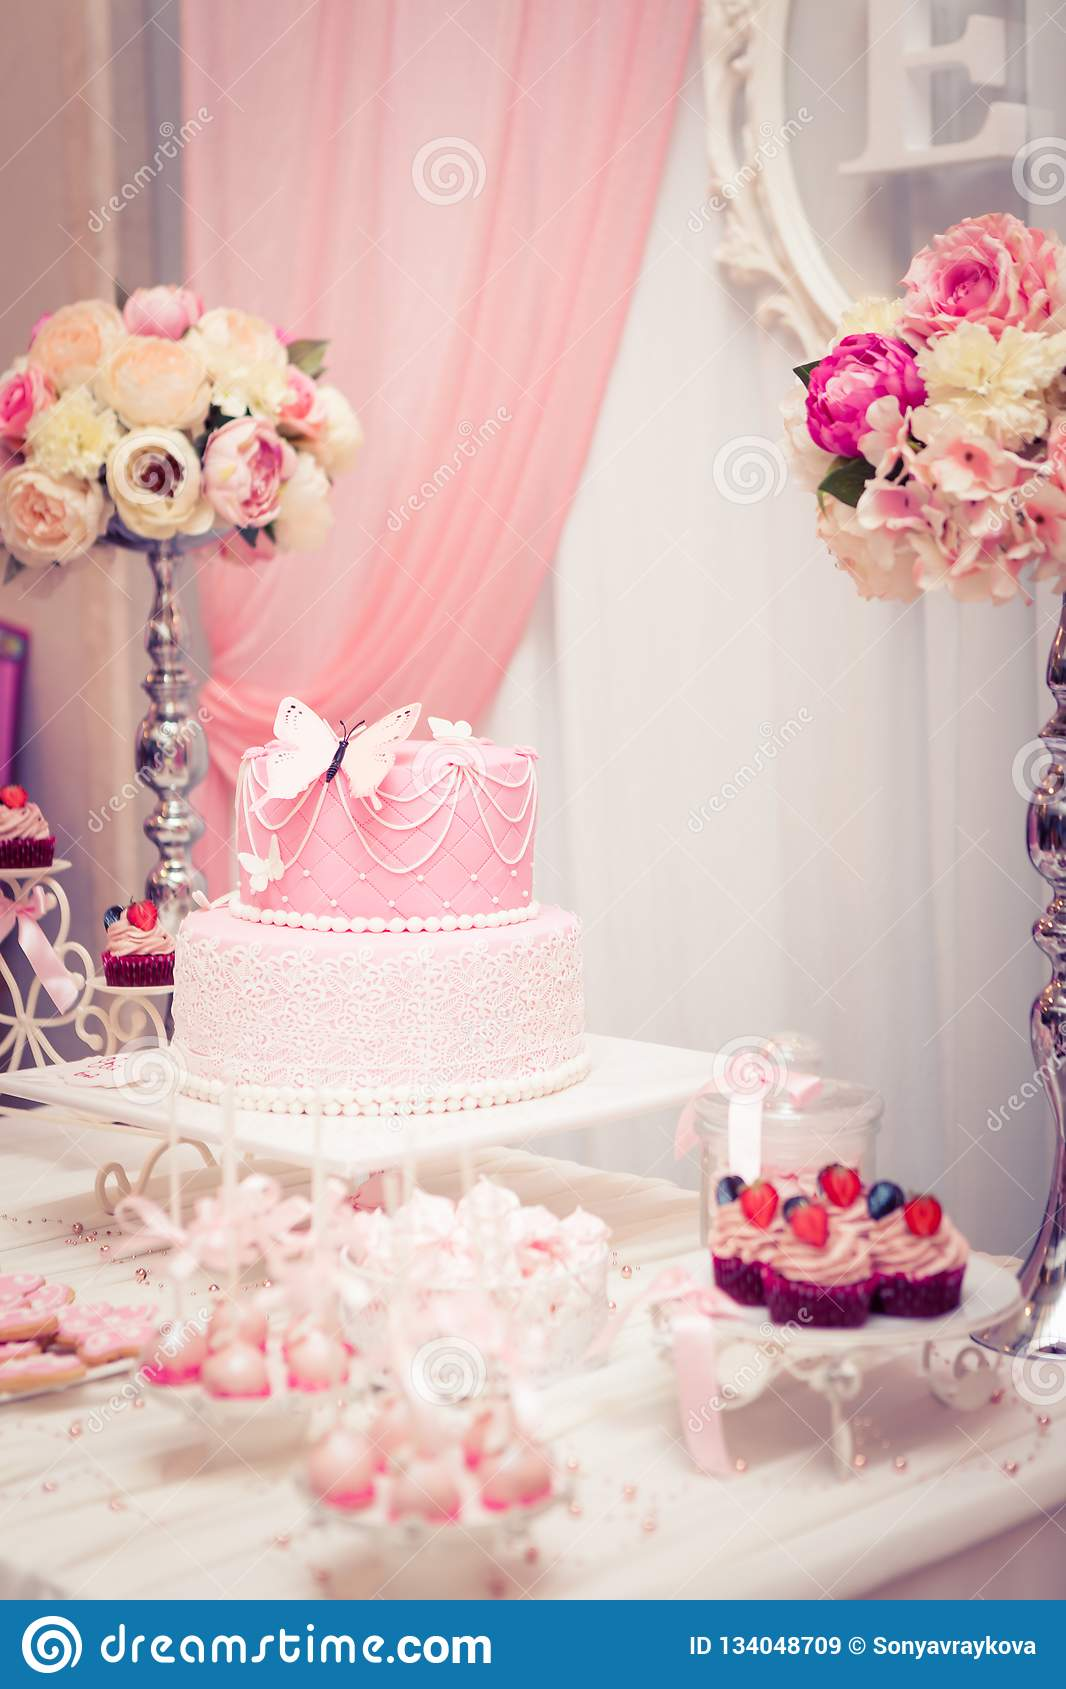 Table Set For Baby Girl Birthday Party With Beautiful Cake And Candy Theme Flower Masterpiece